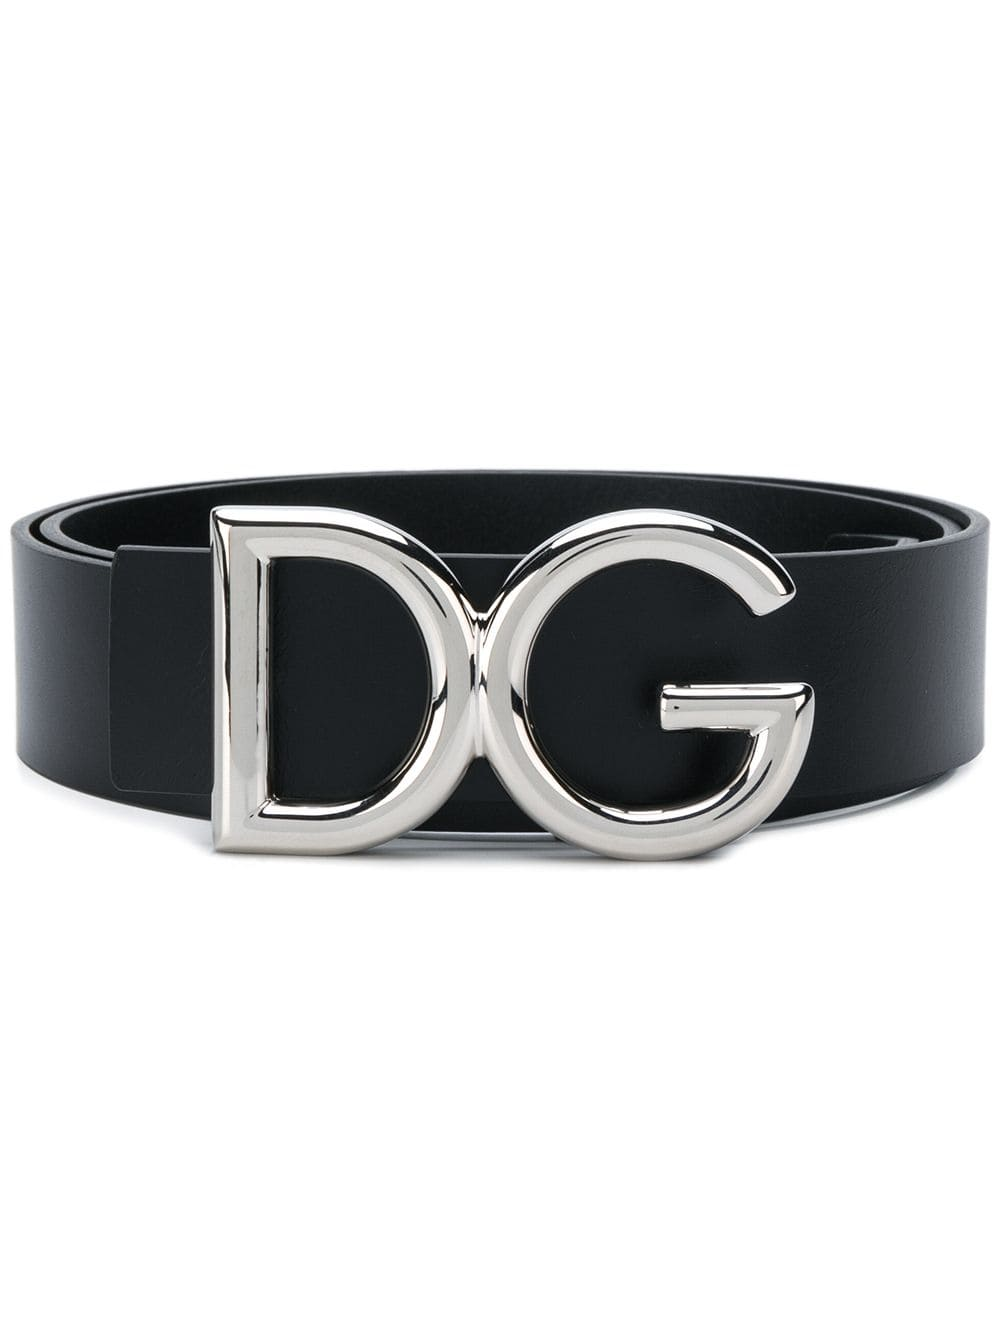 black calf skin leather belt with palladium silver DG logo DOLCE & GABBANA |  | BC4248-AC49387653